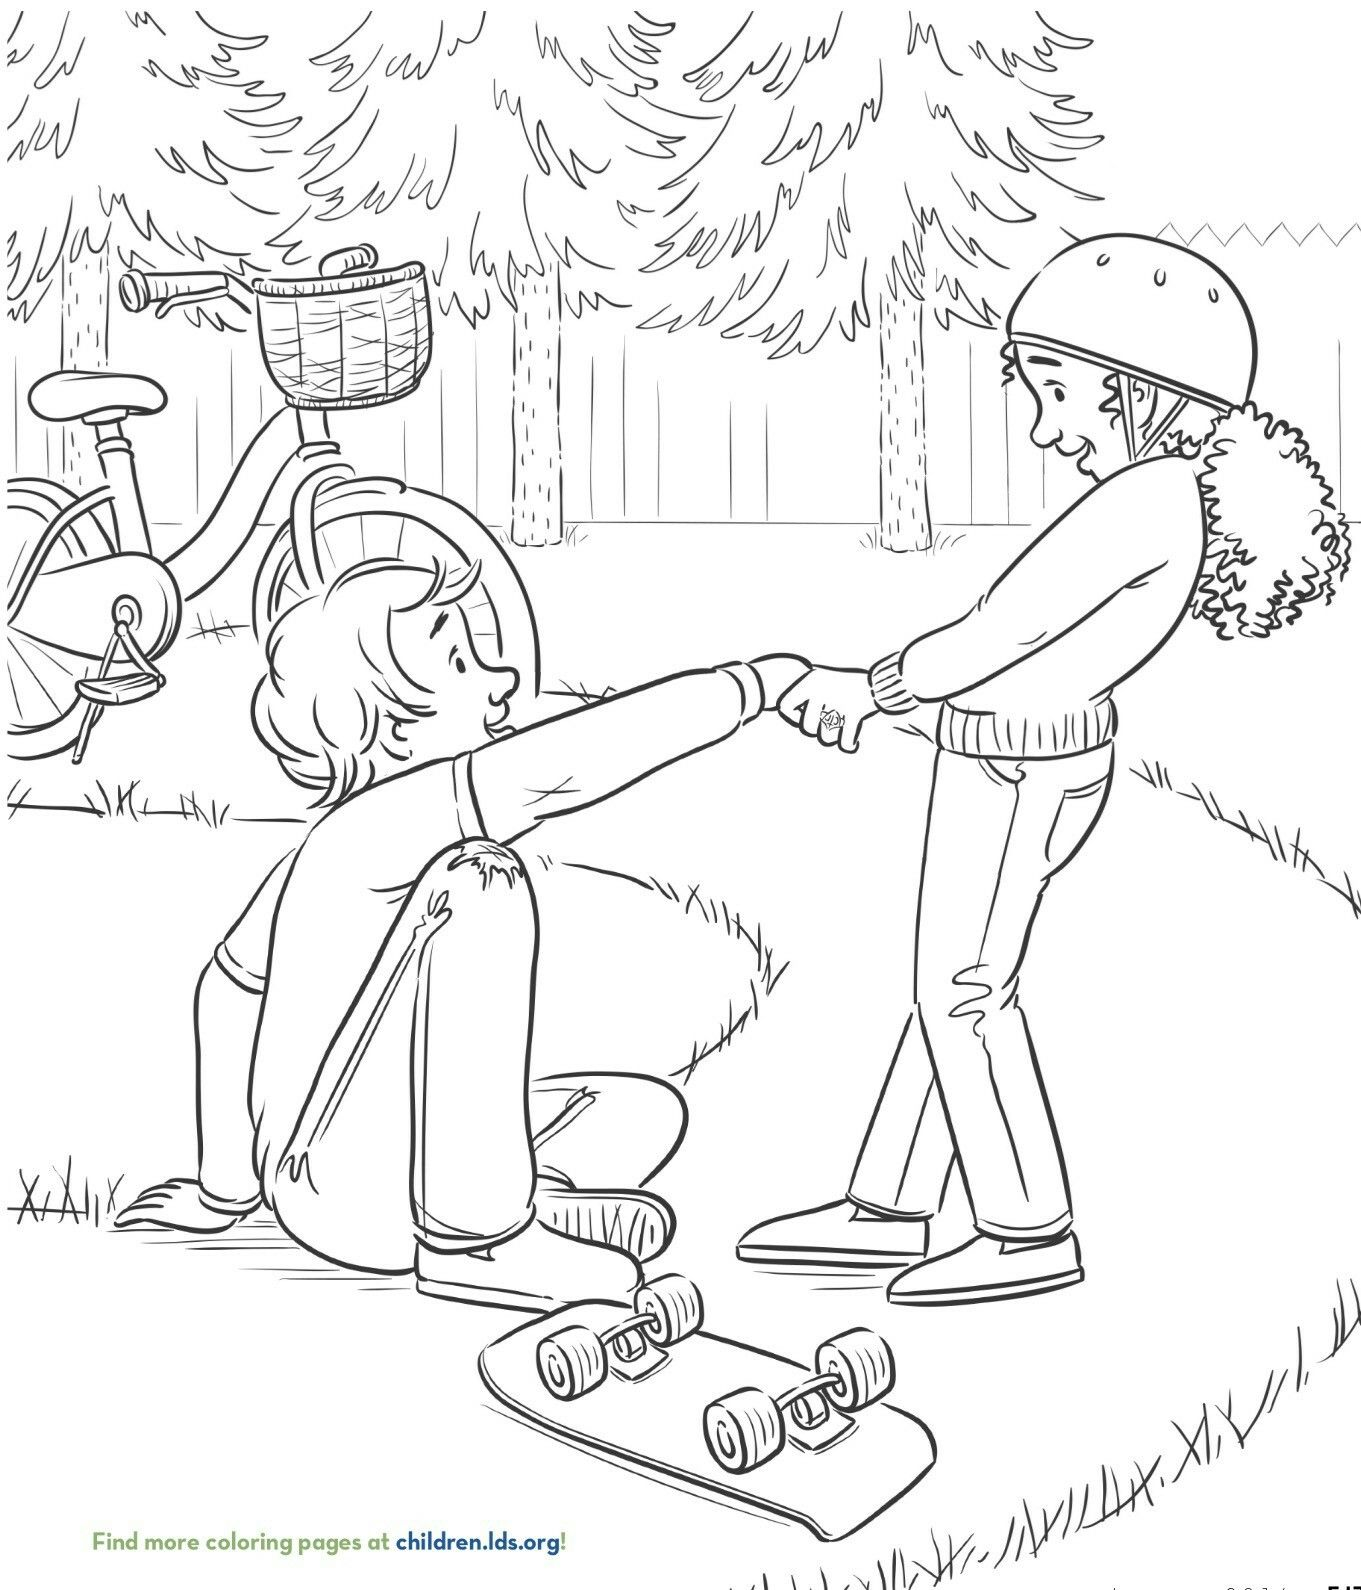 lds coloring pages lds coloring pages prophets divyajananiorg pages coloring lds